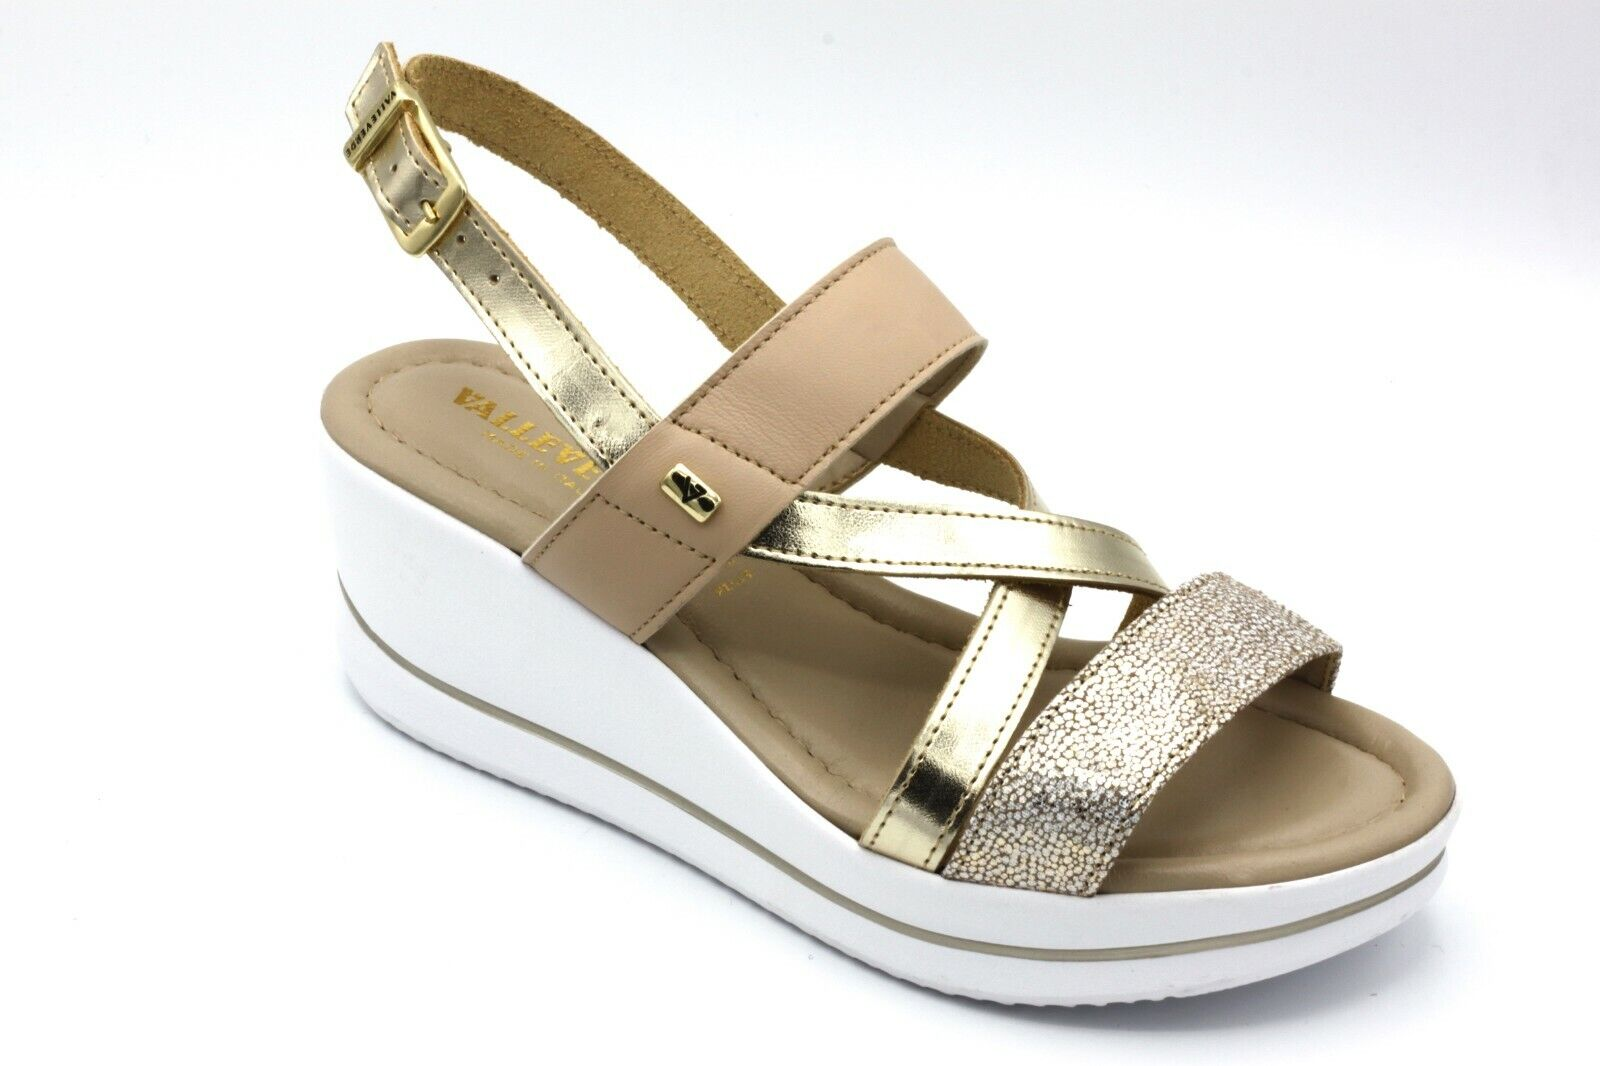 VALLEgreen SANDALI women CON ZEPPA IN PELLE color PLATINO  n. 36